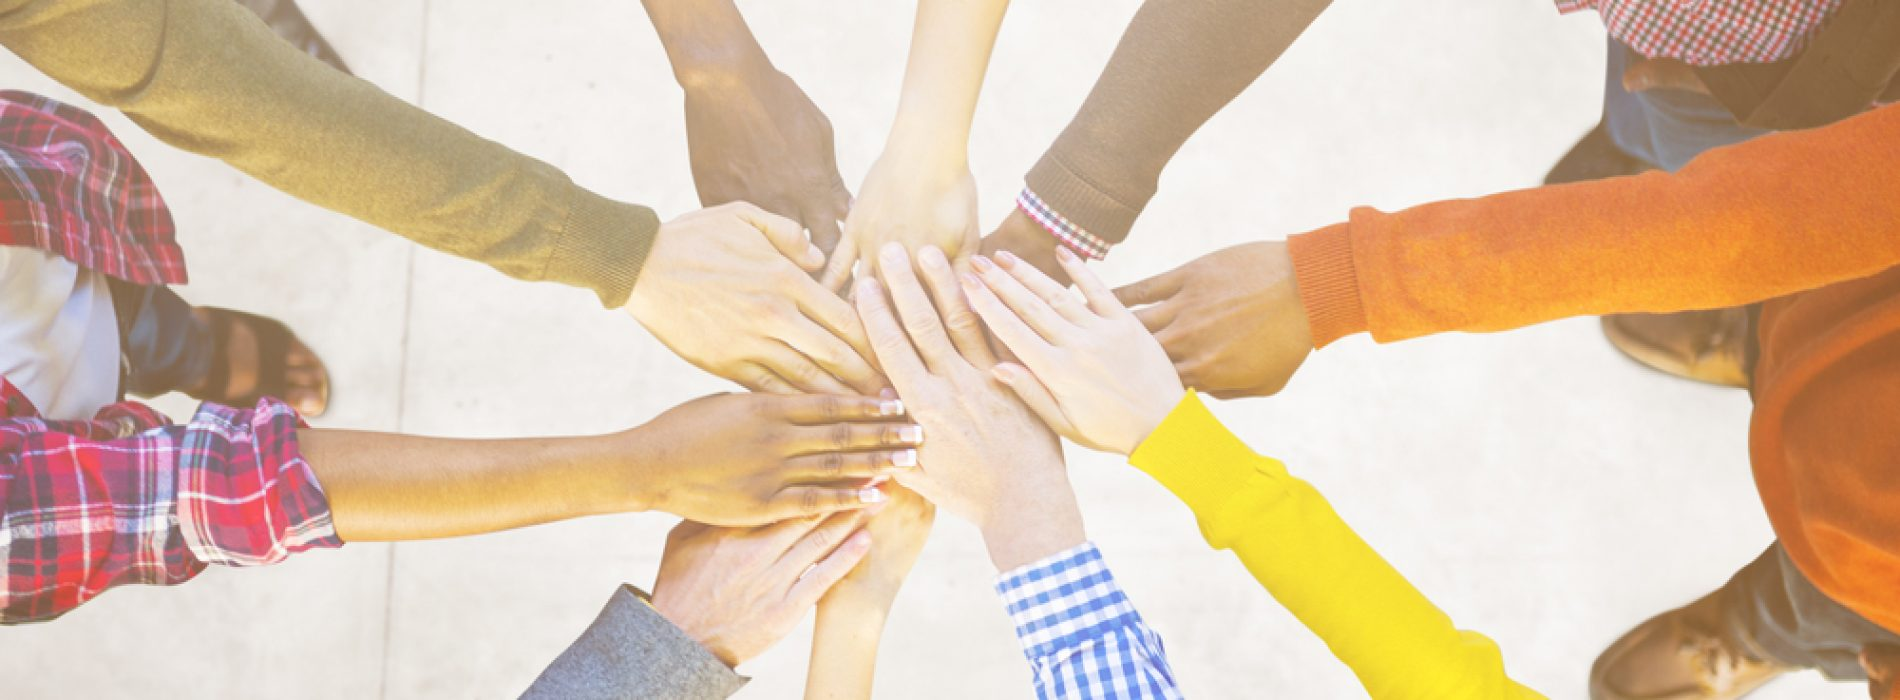 The New Face of Zealous Advocacy: Teamwork